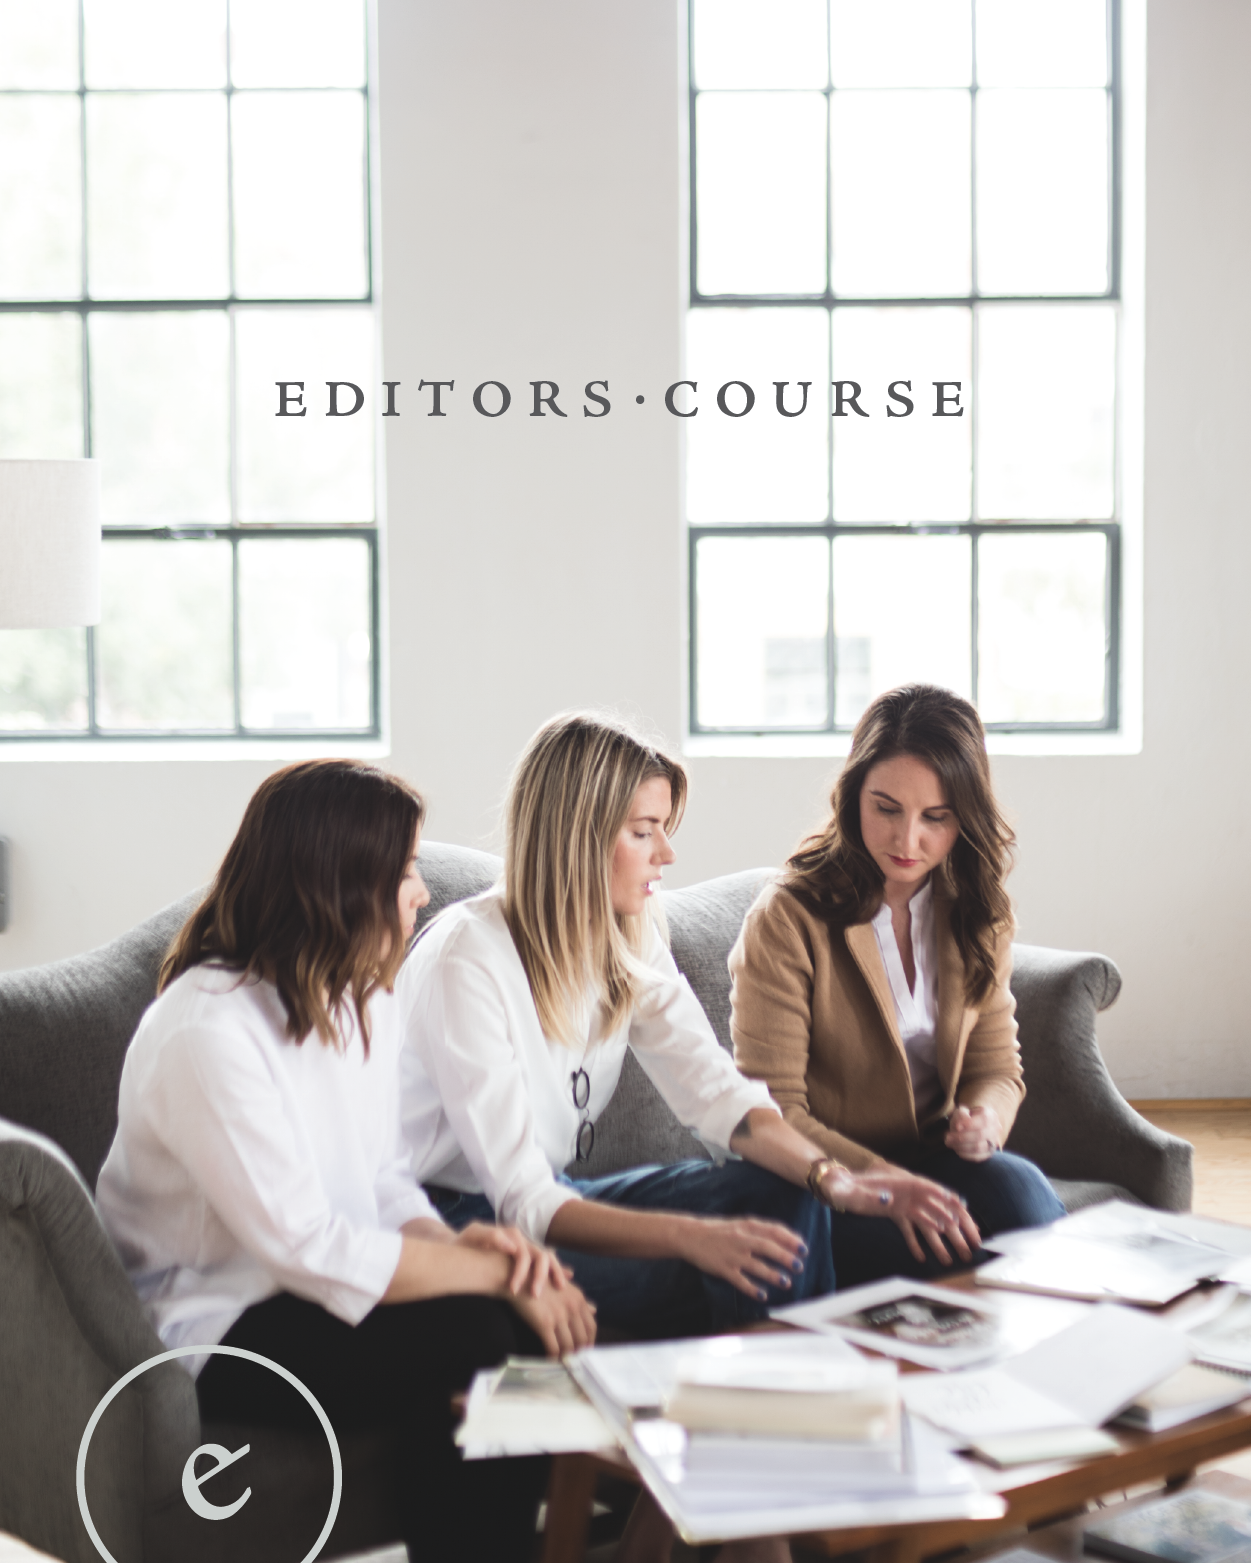 Editors Course  | Branding + Course Material s  The heart behind Editors Course advocates for working well as a creative entrepreneur, for creating a life more beautiful than your brand and for  building a legacy  through your work.